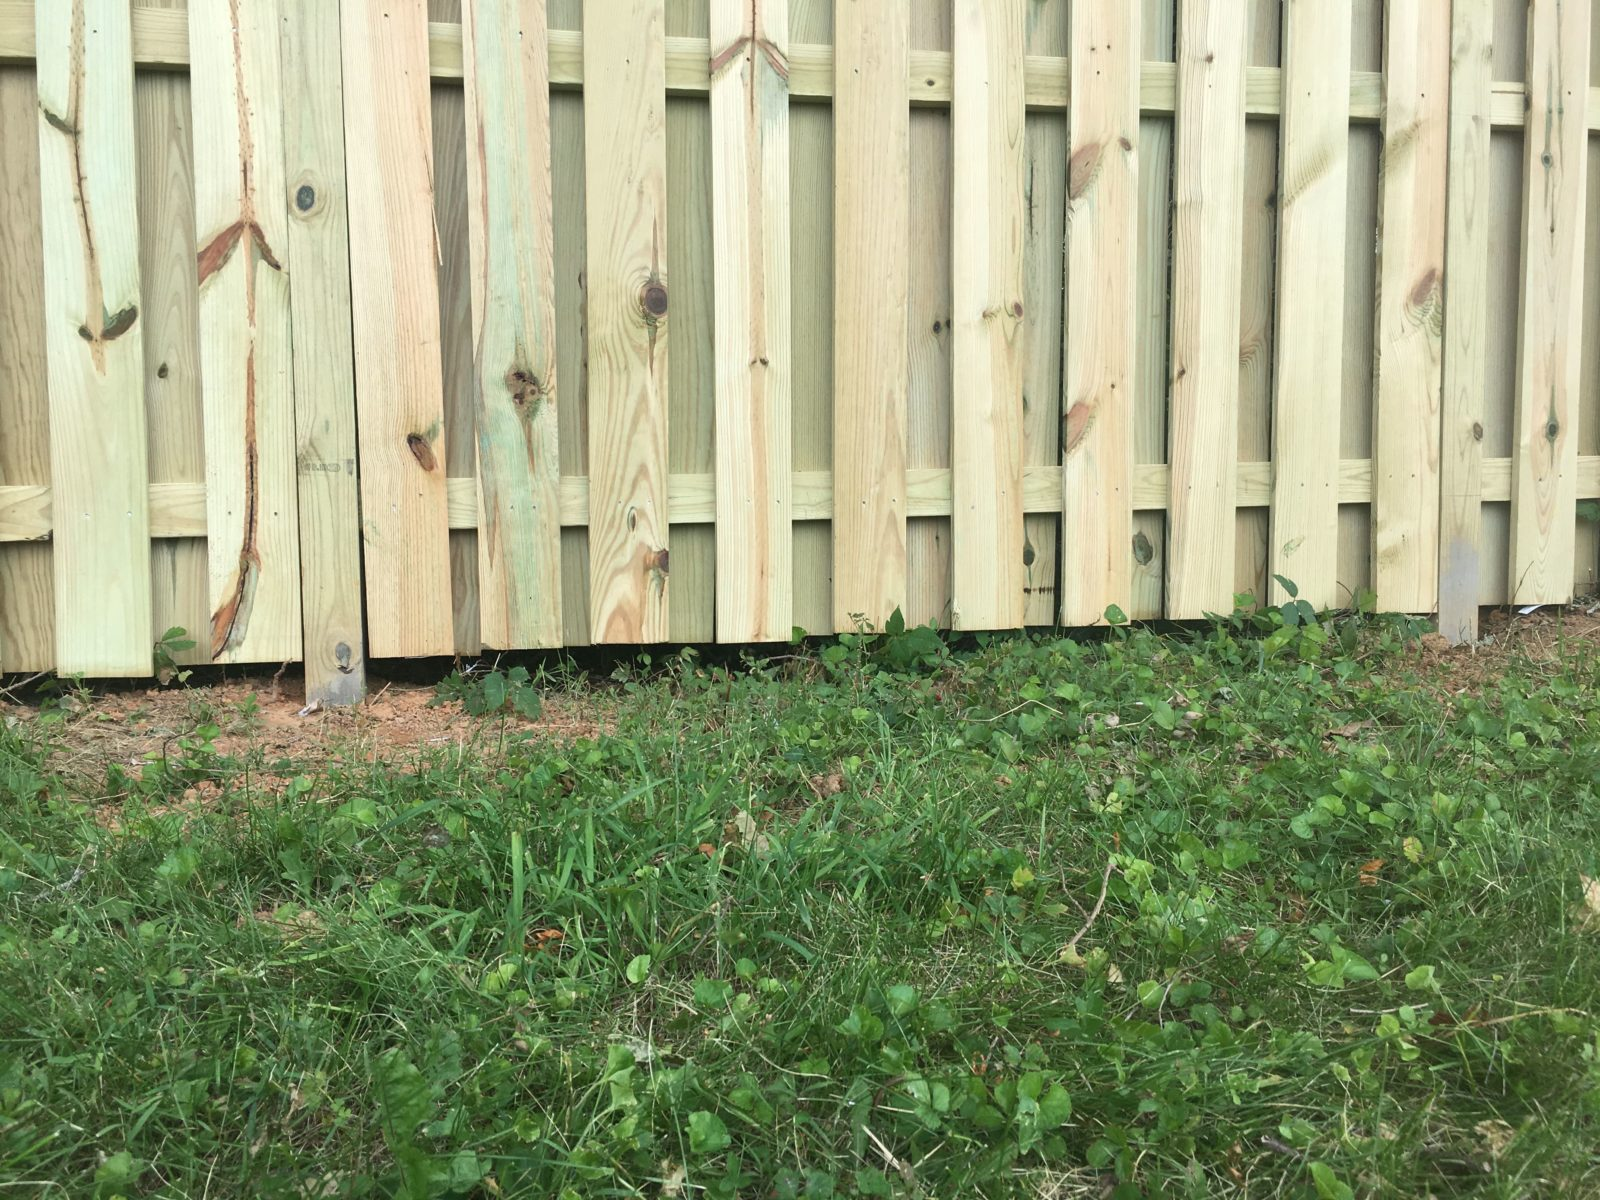 Fence Alignment: Level on the Bottom (Standard)